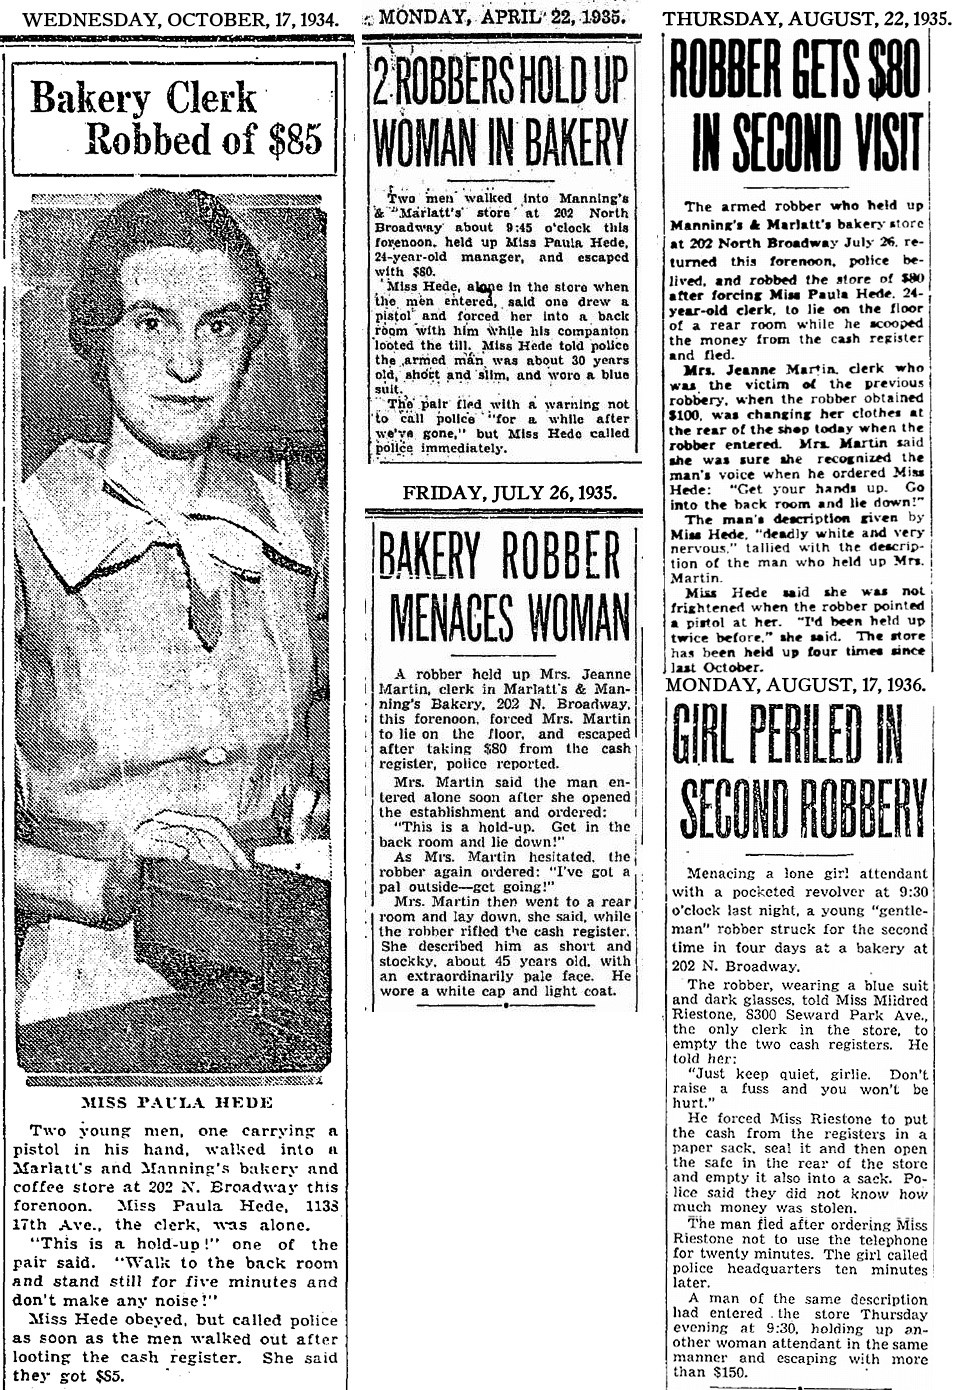 1934-1937 Seattle Times various robbery news clippings.